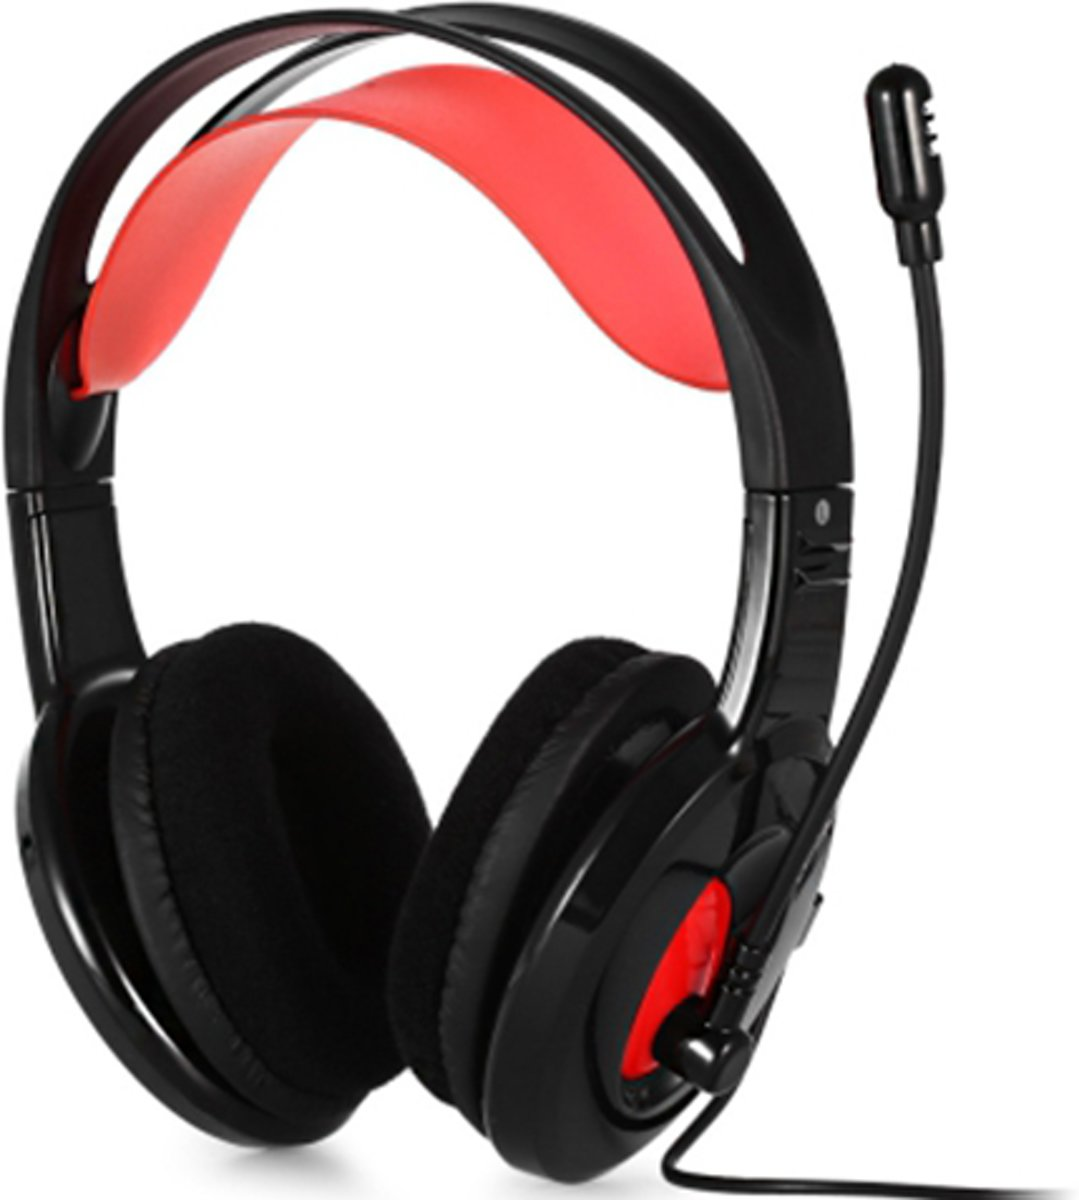 Gamen met de DANYIN DT - 2112 Game HD Headset voor de PC